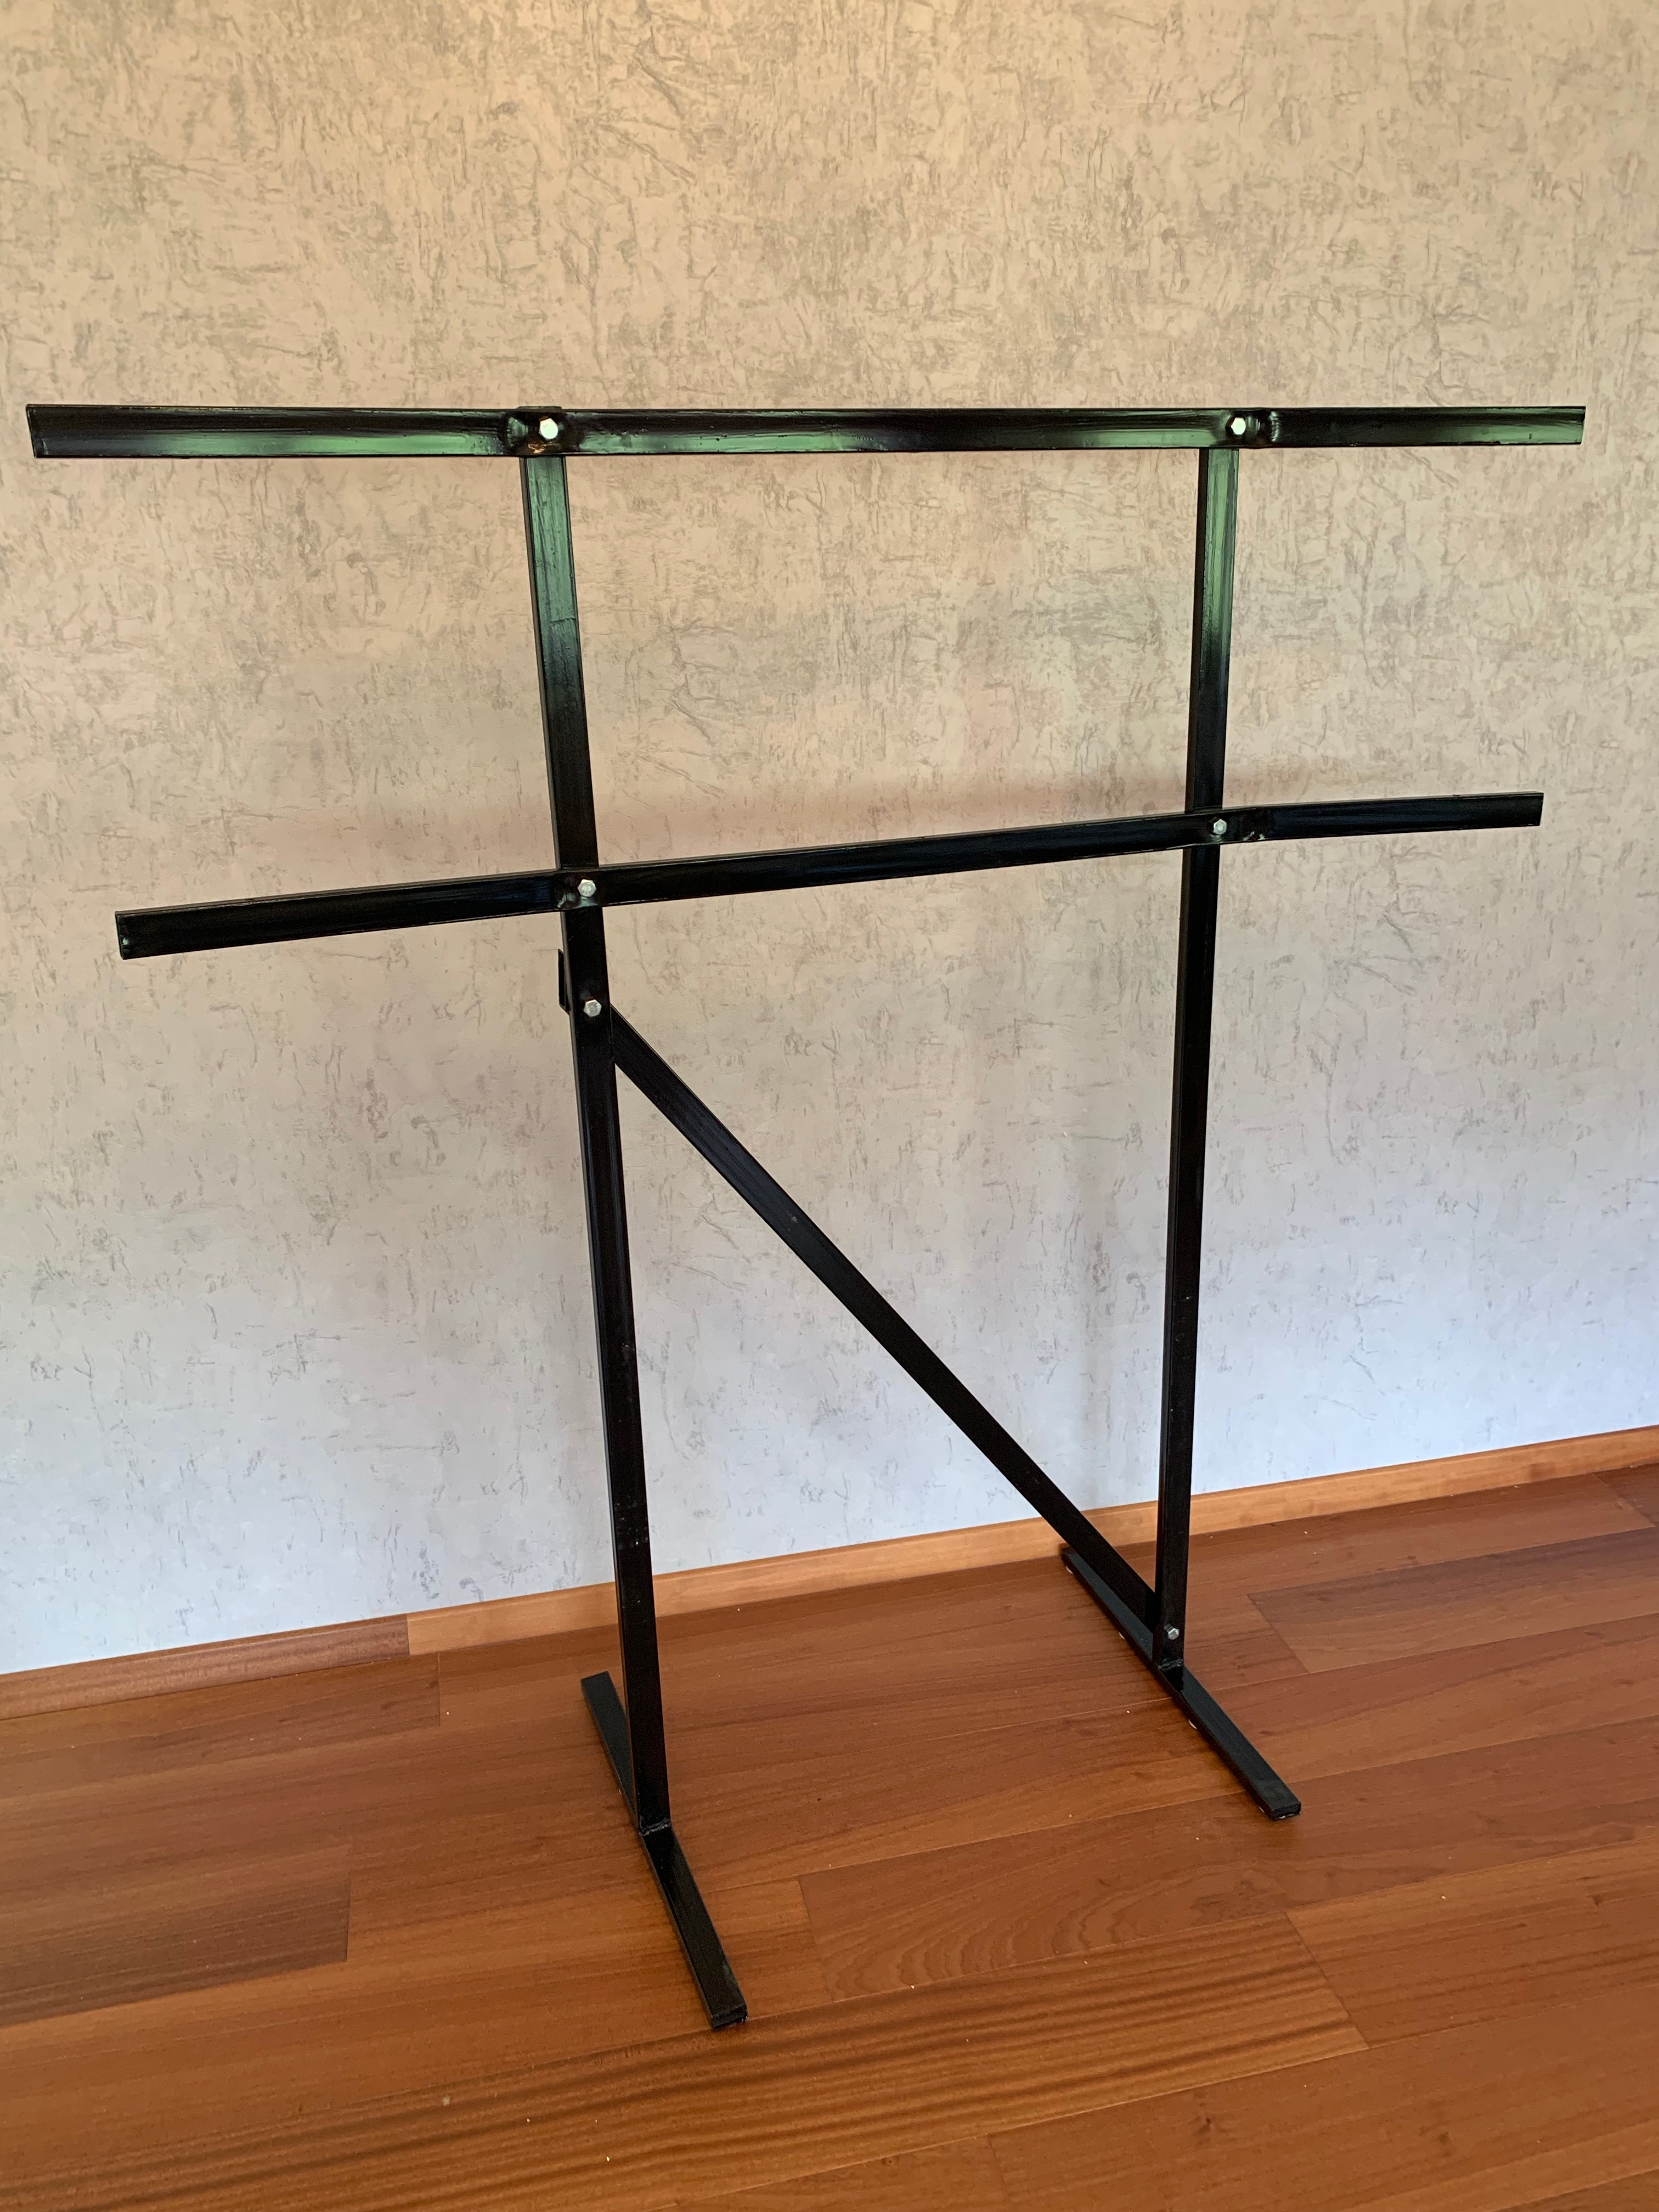 Rack for monitors for trading